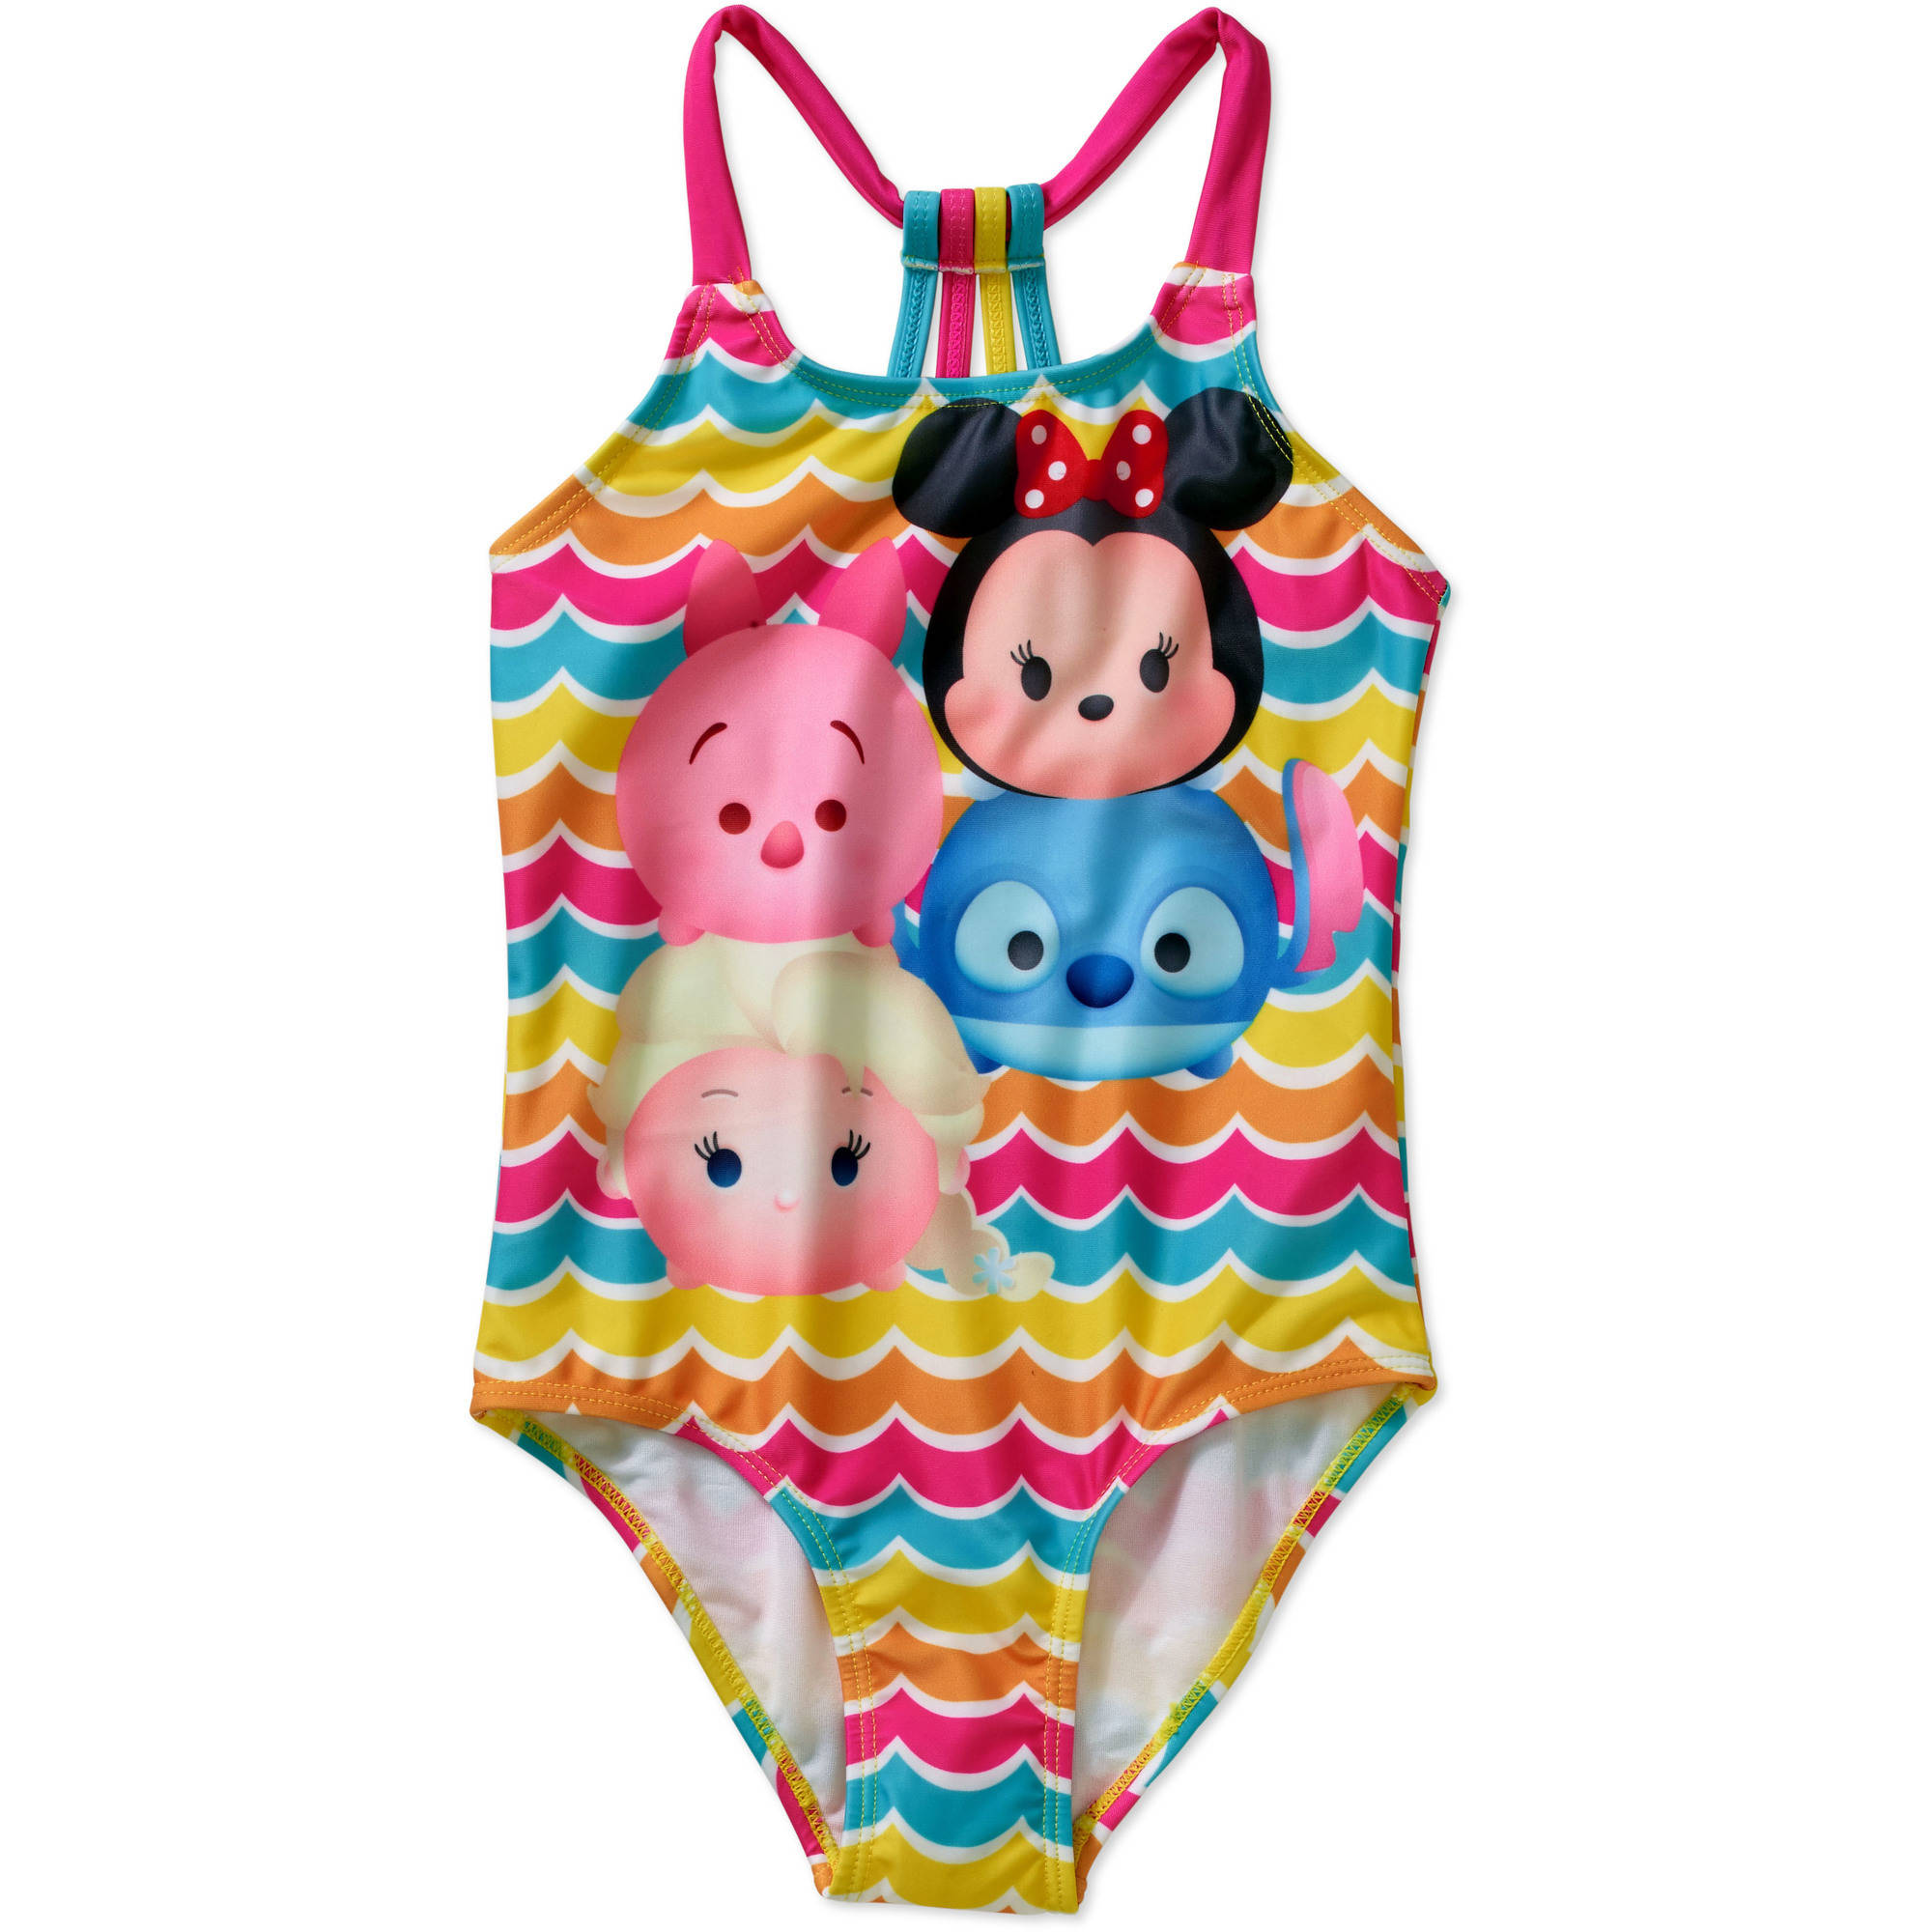 Tsum Tsum Girls' One Piece Swimsuit